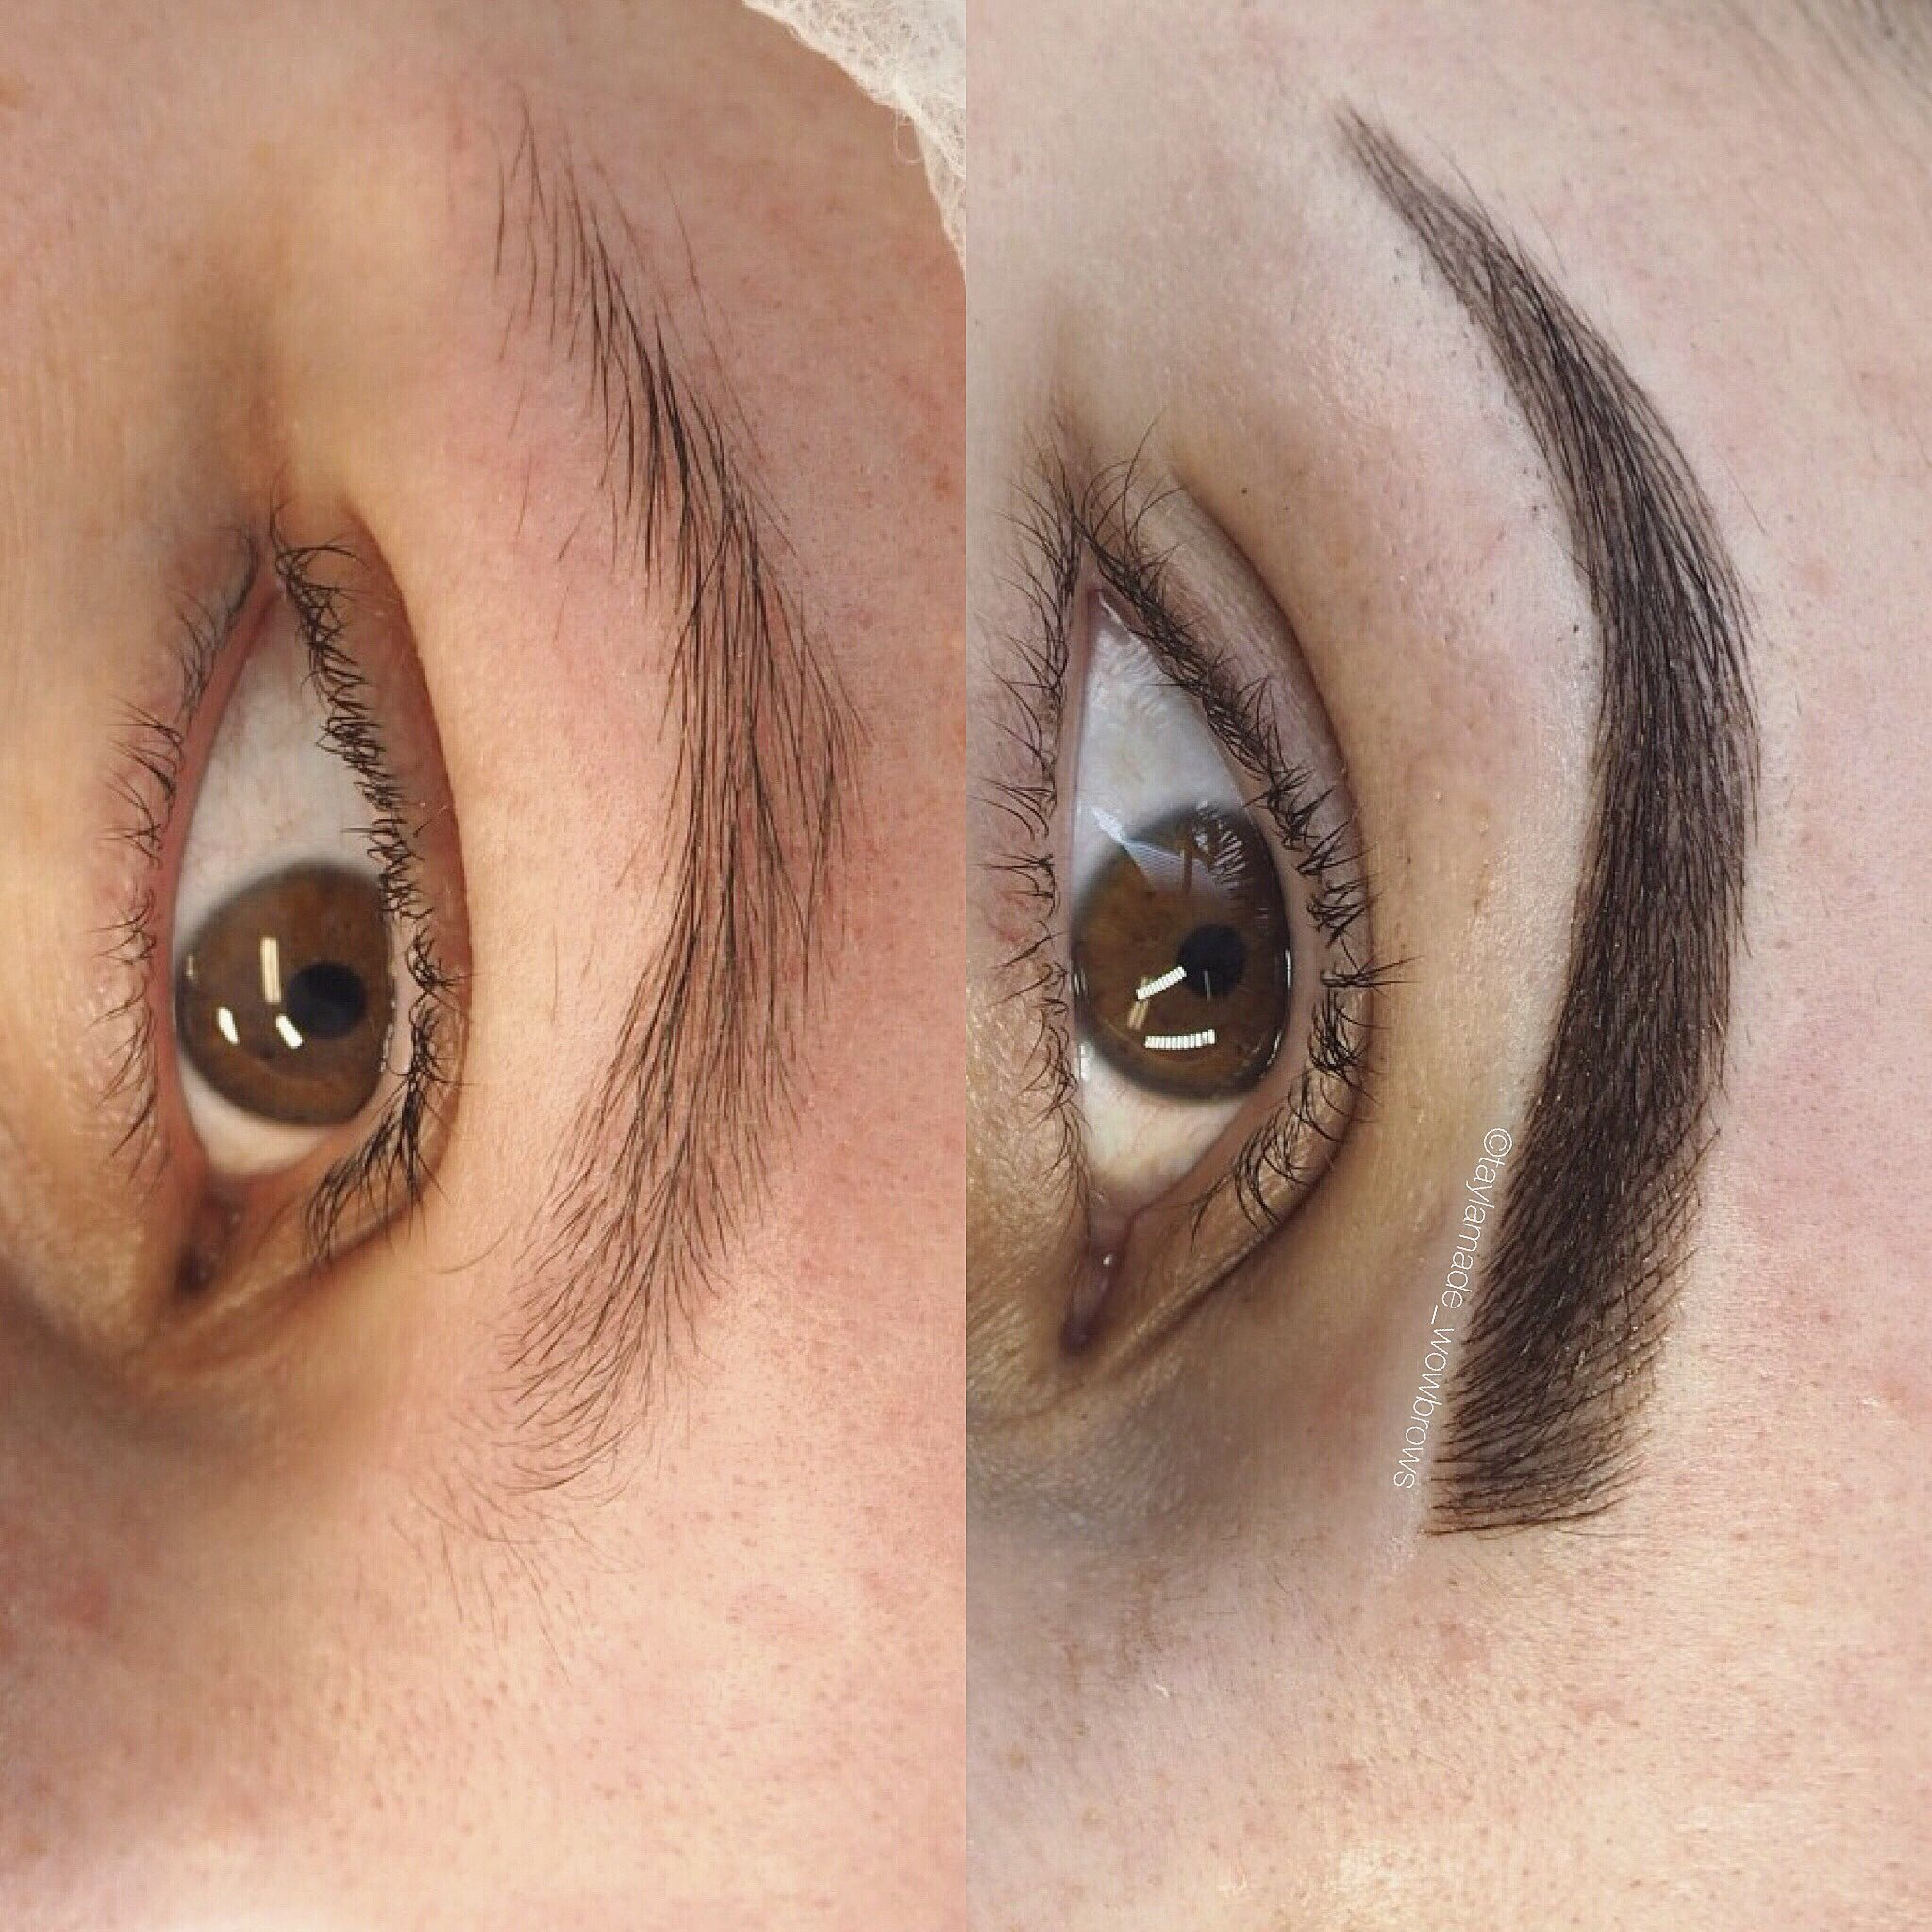 Eyebrow Tattoo Hair Stroke Feather Touch Tattooed Eyebrows Cosmetic